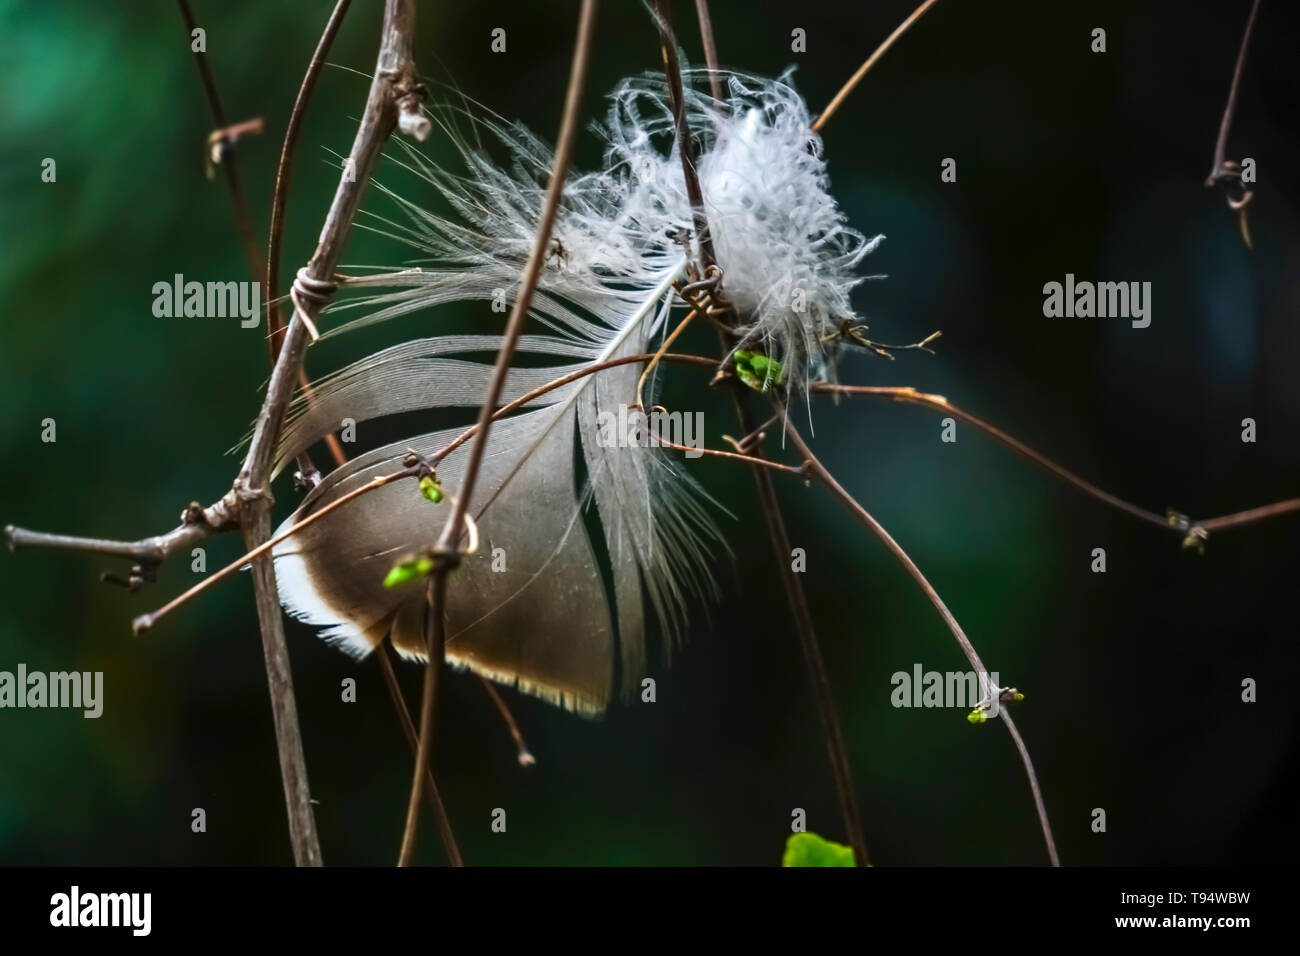 Close up of a bird's feather caught in the branches of a bush - Stock Image